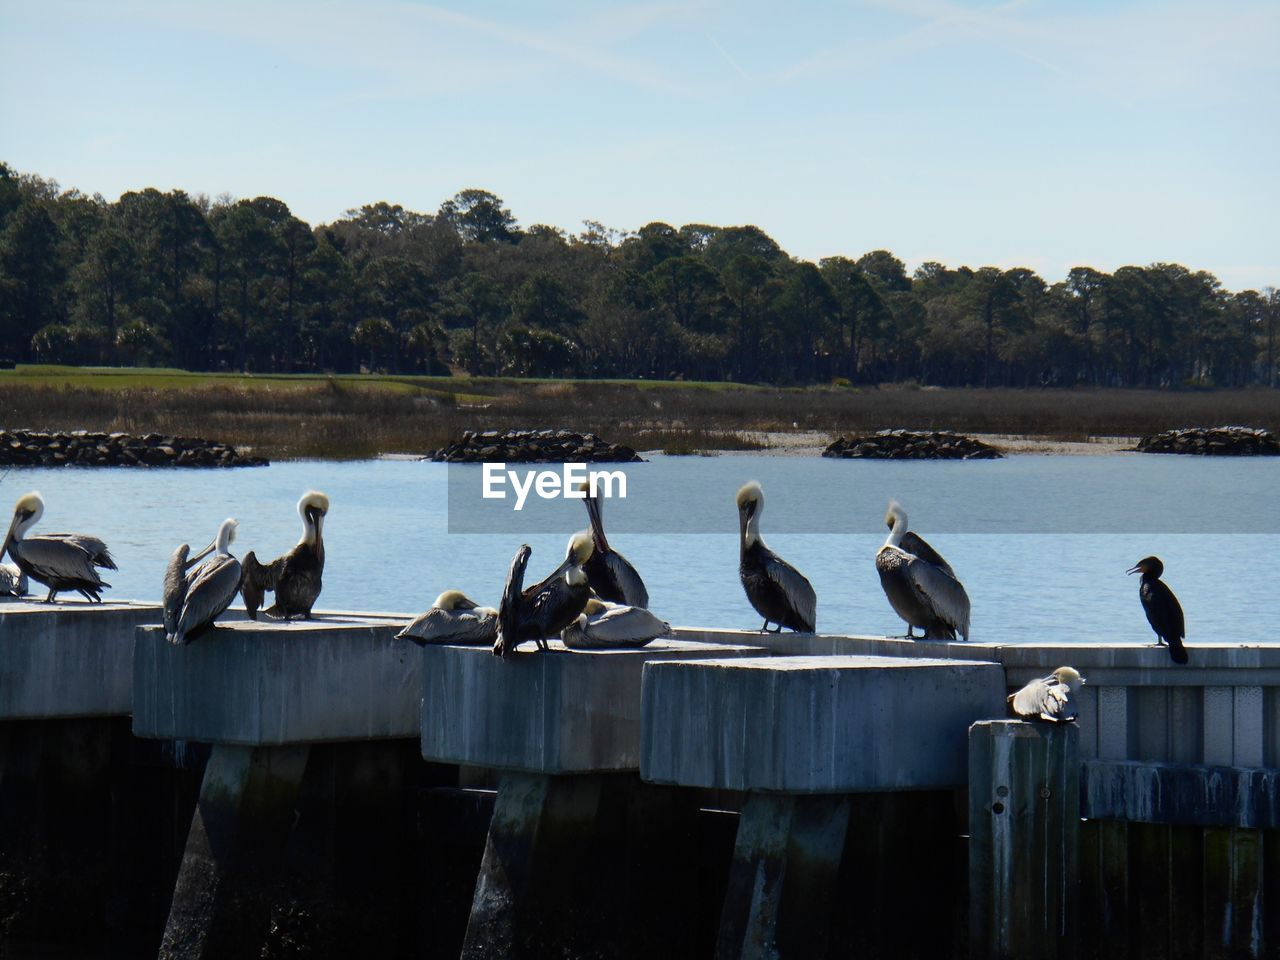 Pelicans And Cormorant Perching On Bridge Over River Against Sky